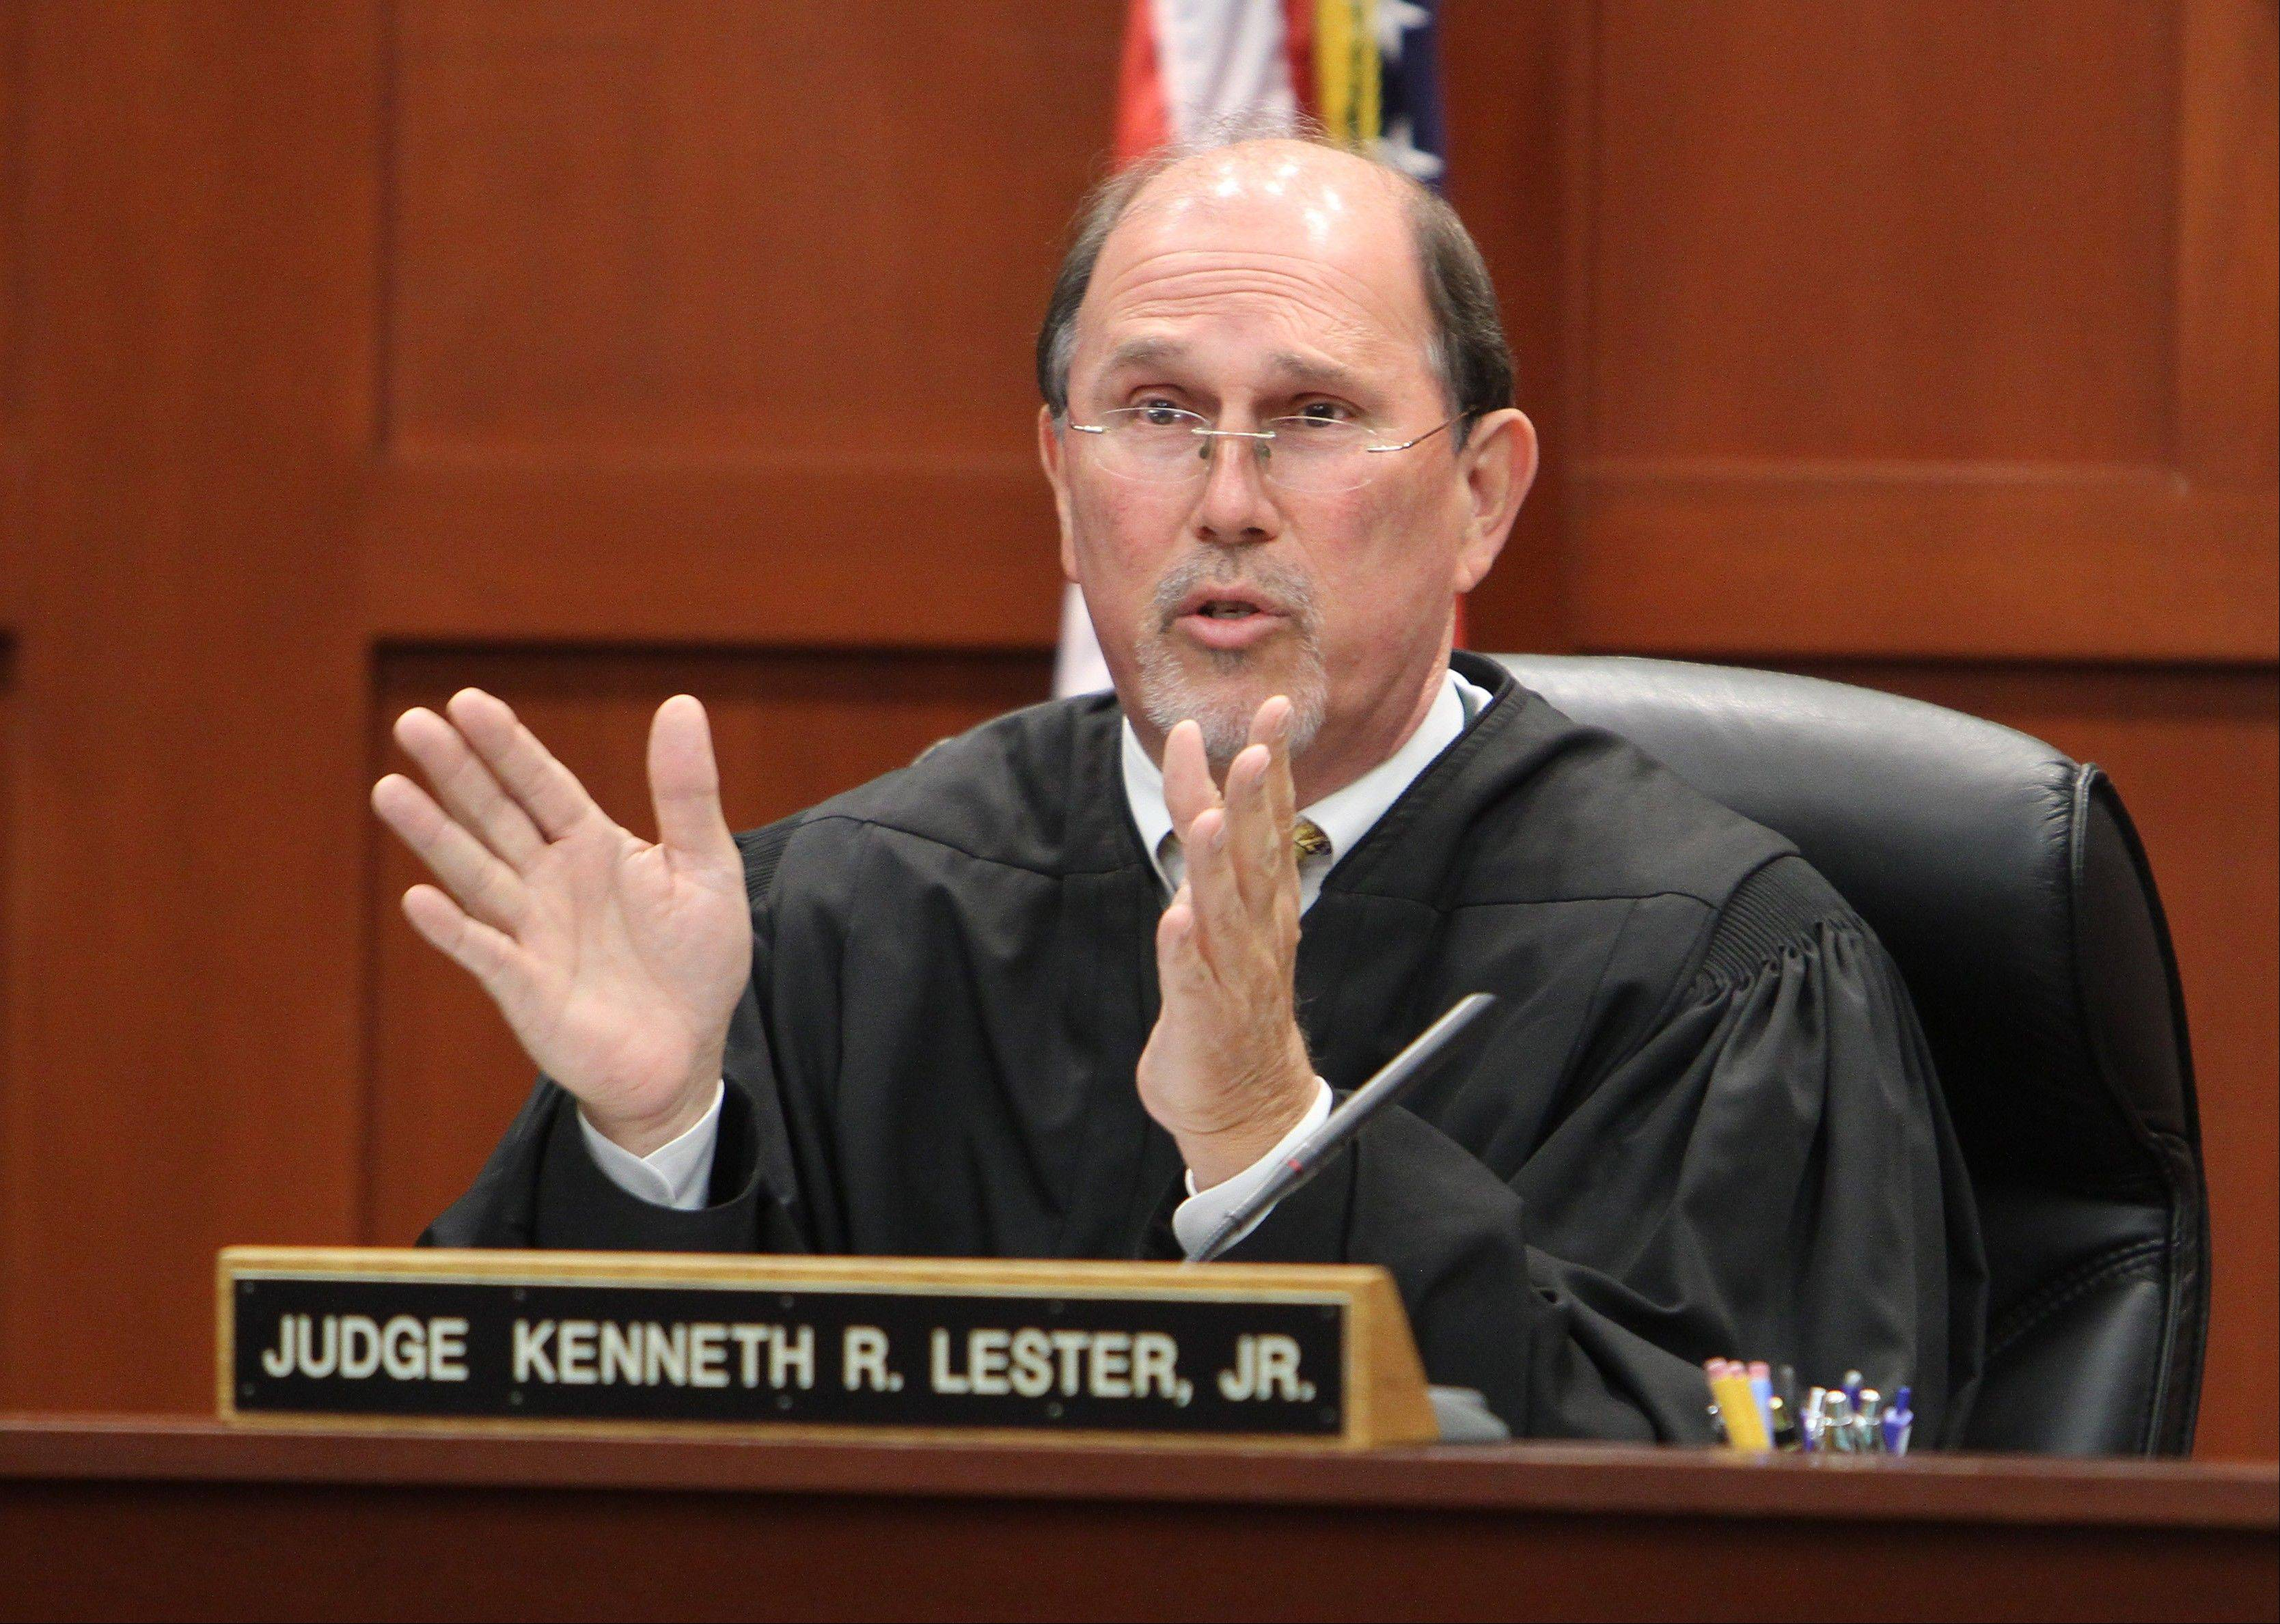 Judge Kenneth Lester, Jr. speaks Friday during a hearing in the trial of George Zimmerman.